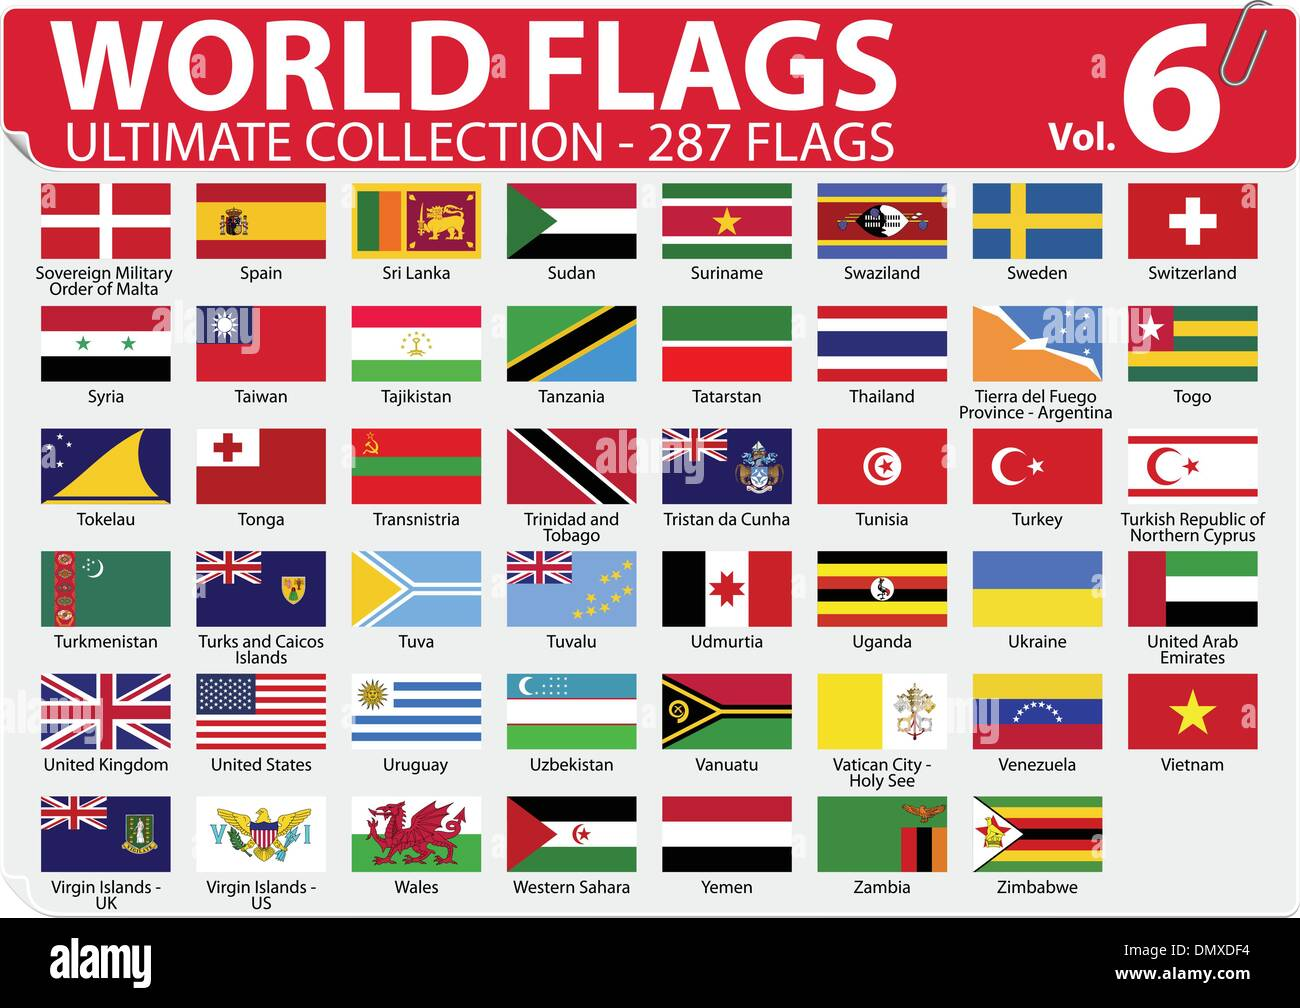 World Flags - Ultimate Collection - 287 Flags